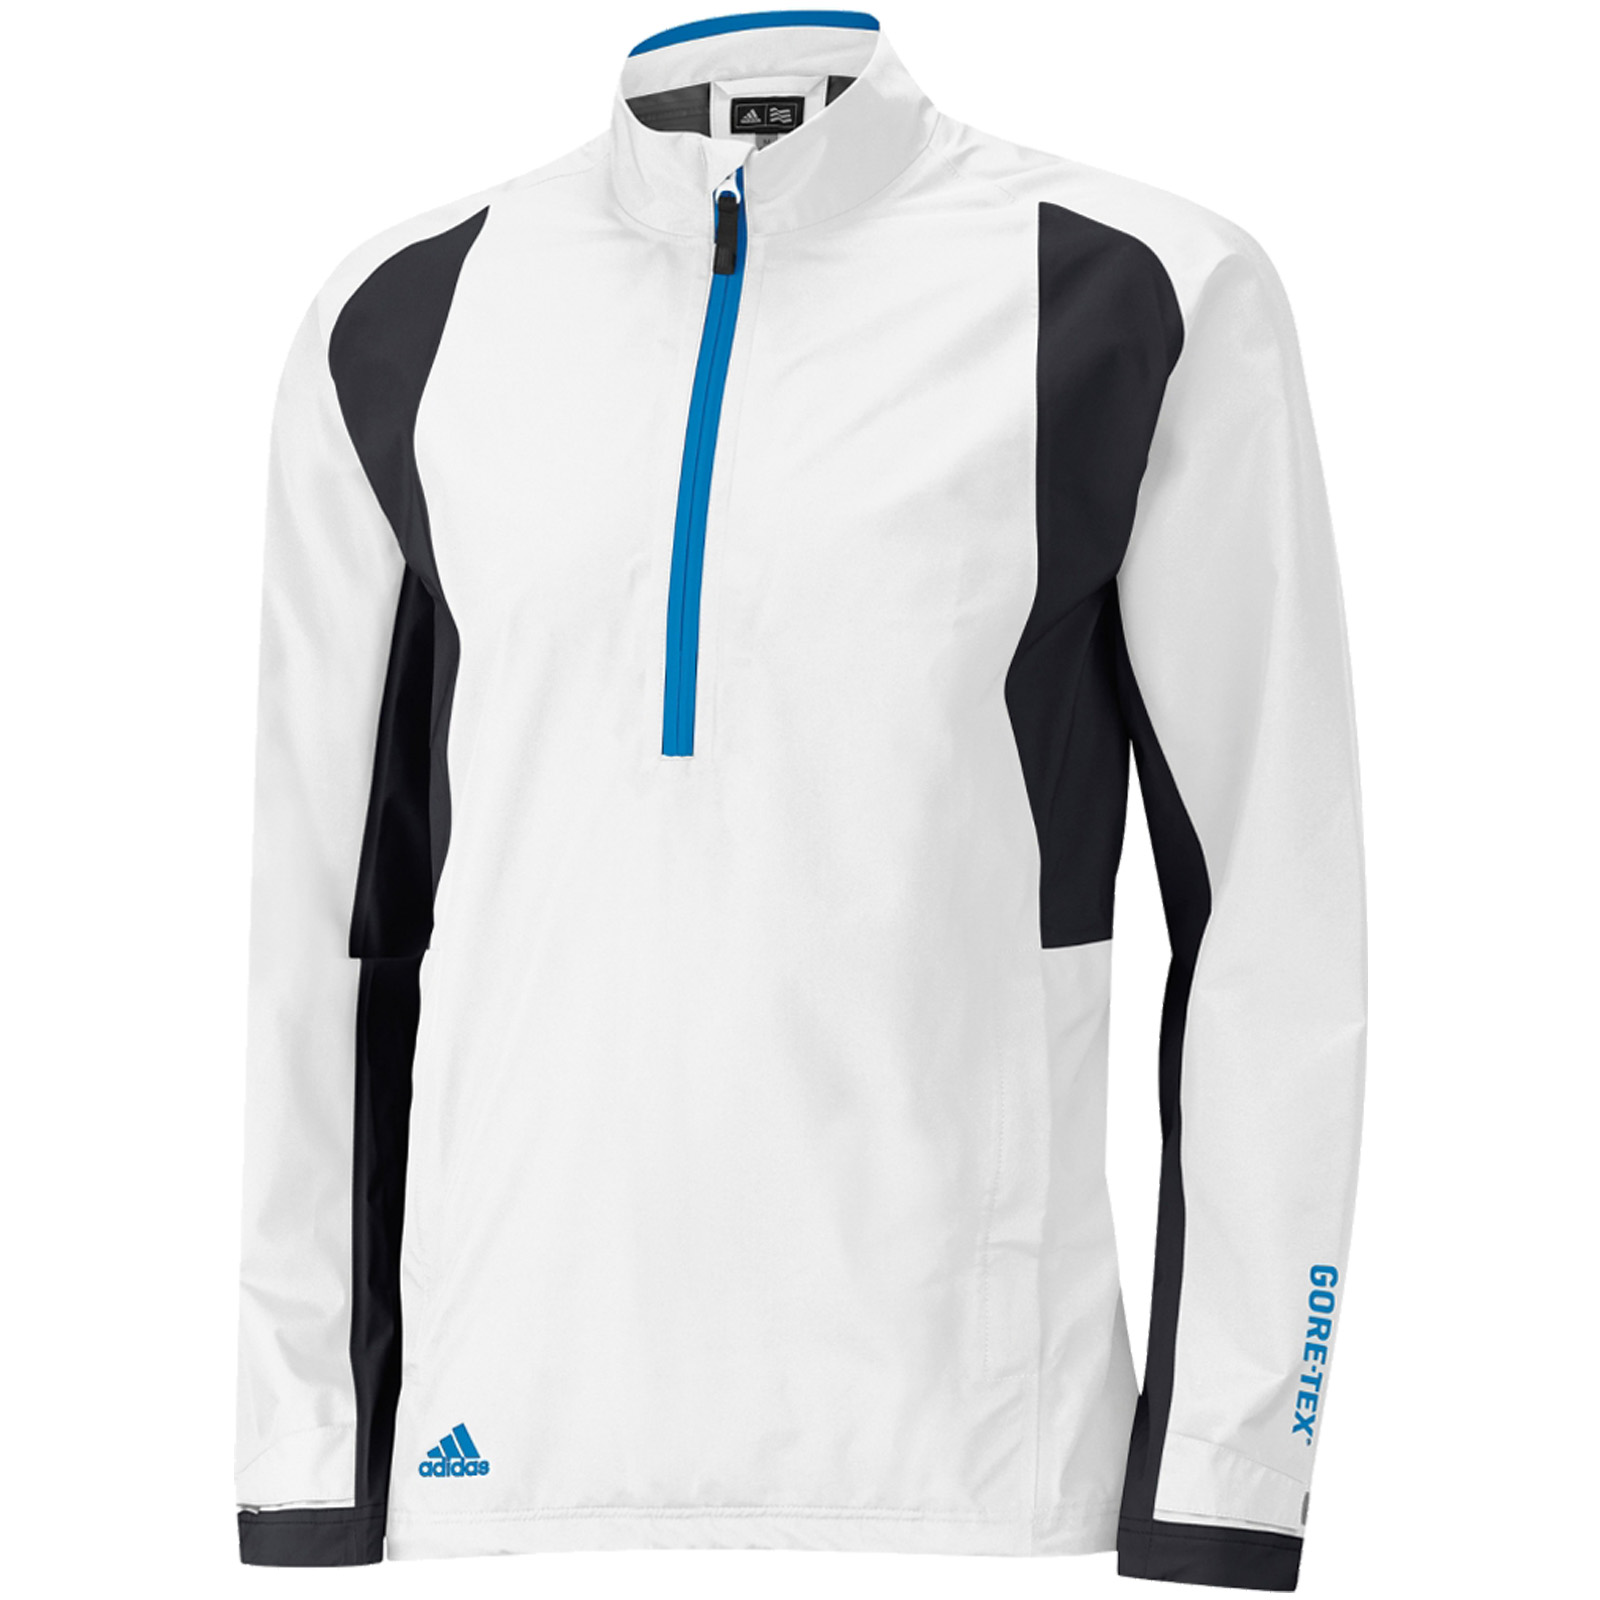 Adidas clearance gore tex waterproof golf rain jacket for Adidas golf rain shirt